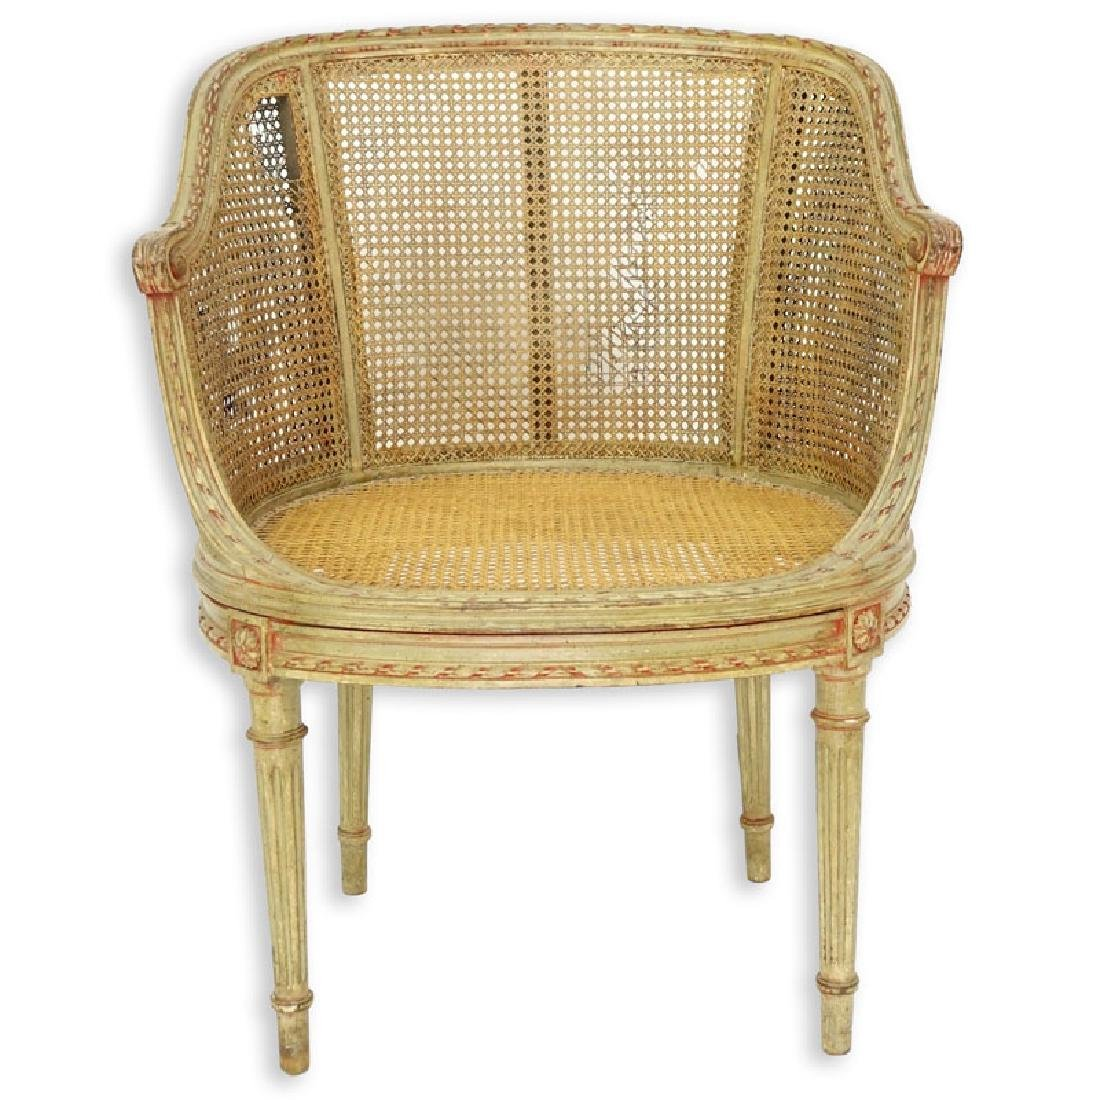 Early 20th Century Louis VXI Style Caned Vanity Chair - 2